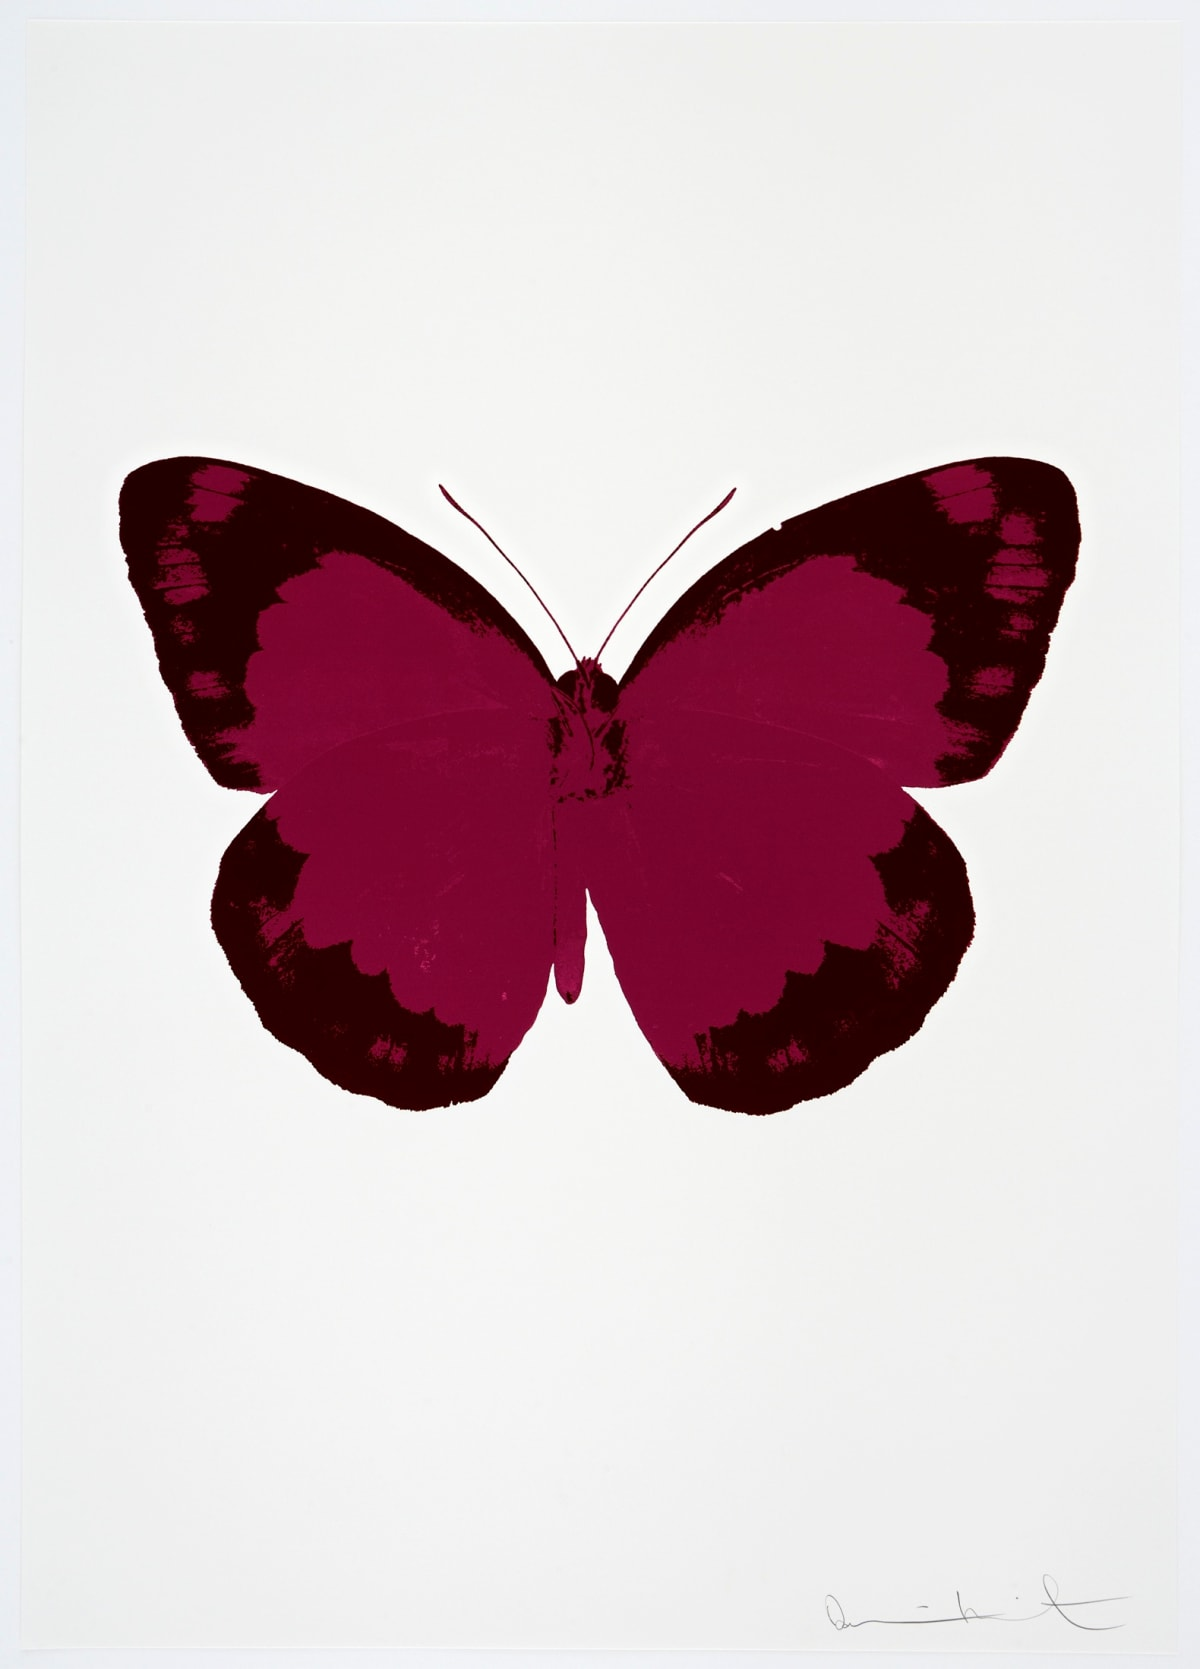 Damien Hirst The Souls II - Fuchsia Pink/Burgundy/Blind Impression, 2010 2 colour foil block on 300gsm Arches 88 archival paper. Signed and numbered. Published by Paul Stolper and Other Criteria 72 x 51cm OC7893 / 658-76 Edition of 15